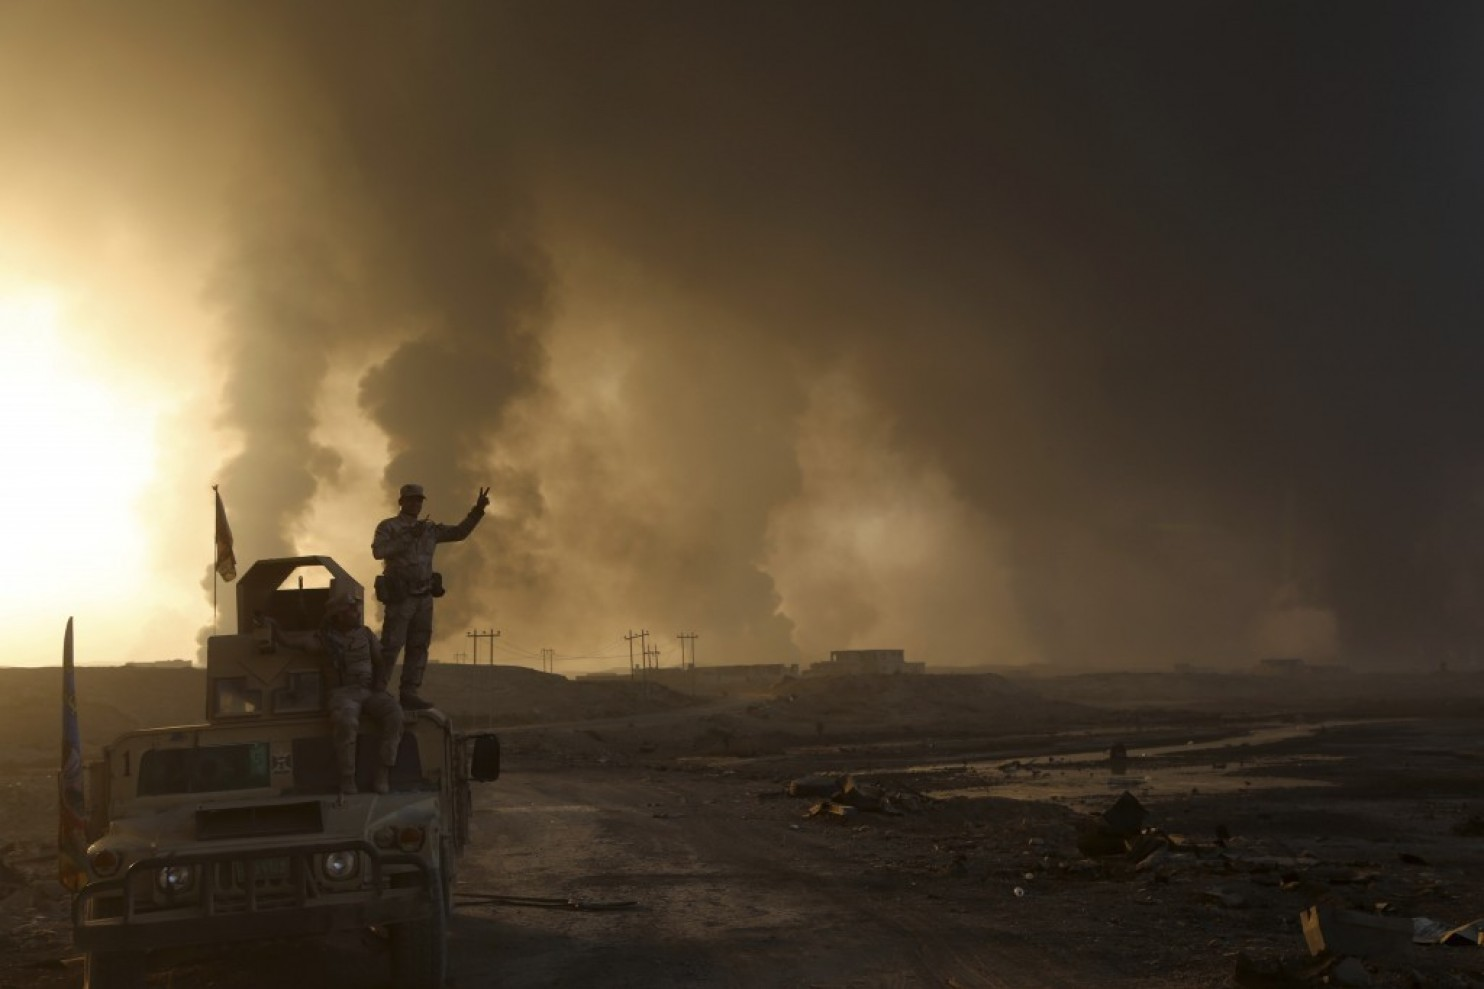 Smoke rises from Islamic State positions after an airstrike by coalition forces in Mosul, Iraq, on Oct. 18. (AP)